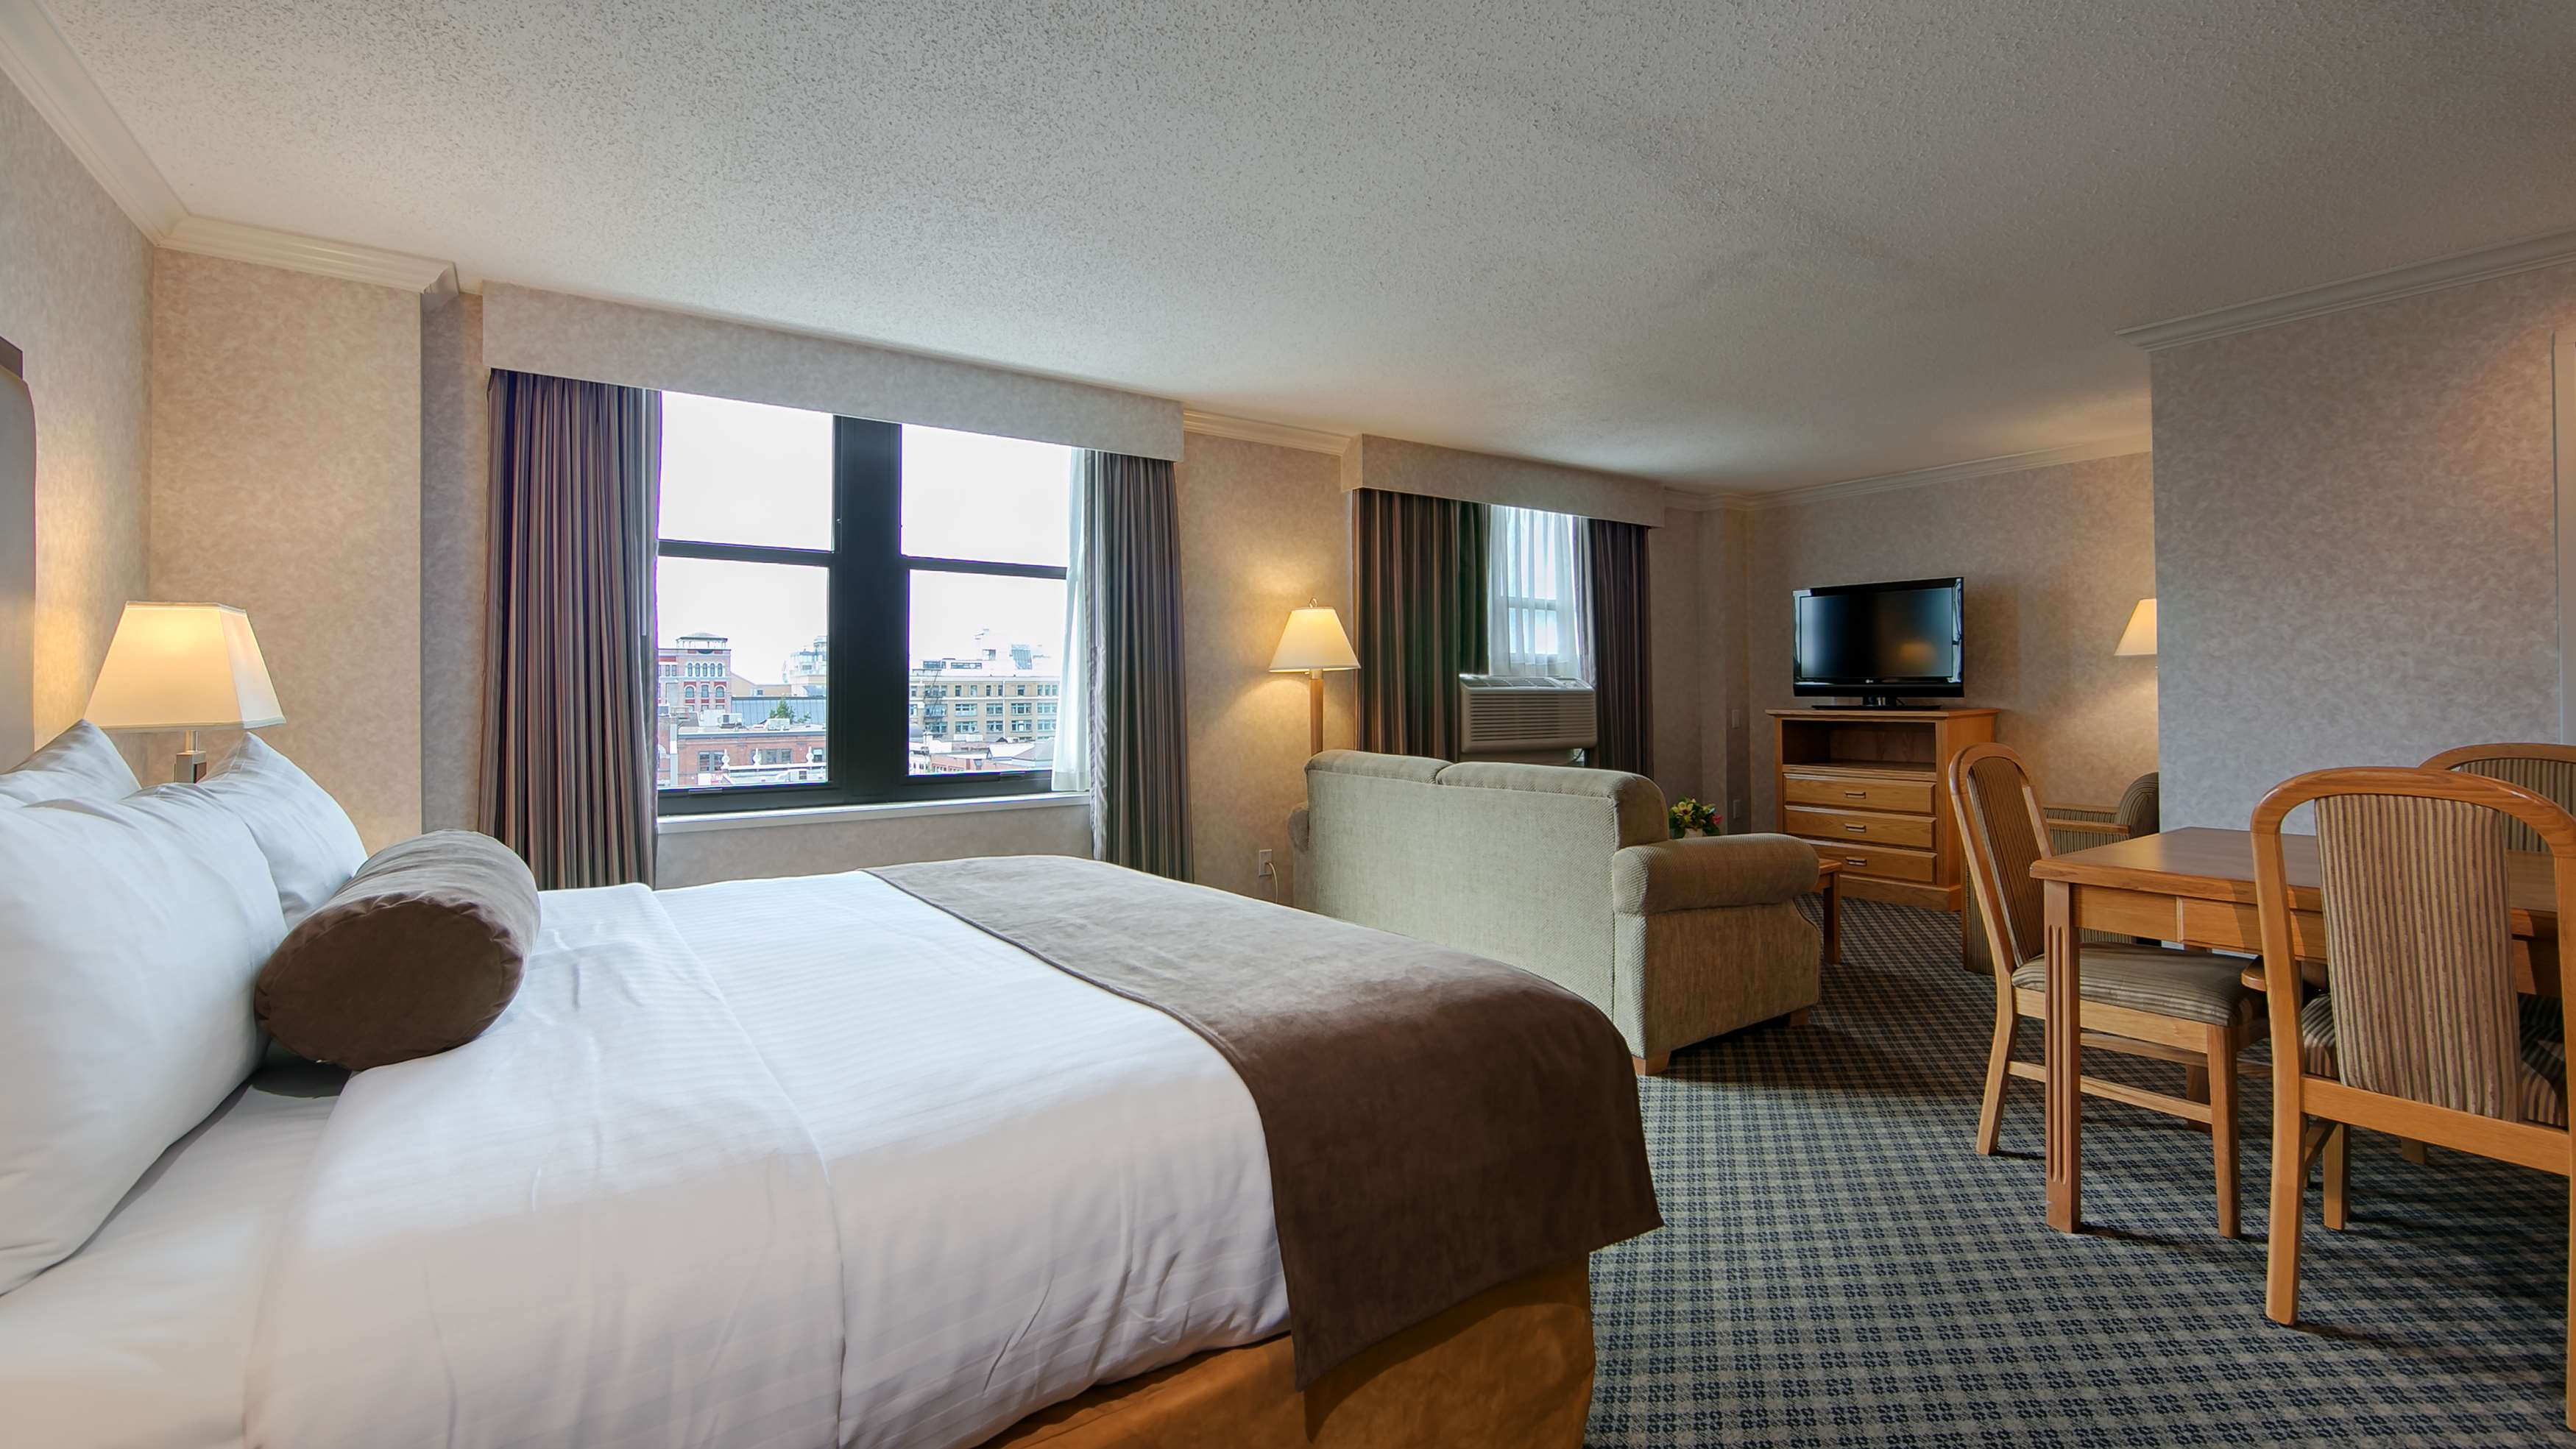 Best Western Plus Carlton Plaza Hotel in Victoria: King Room